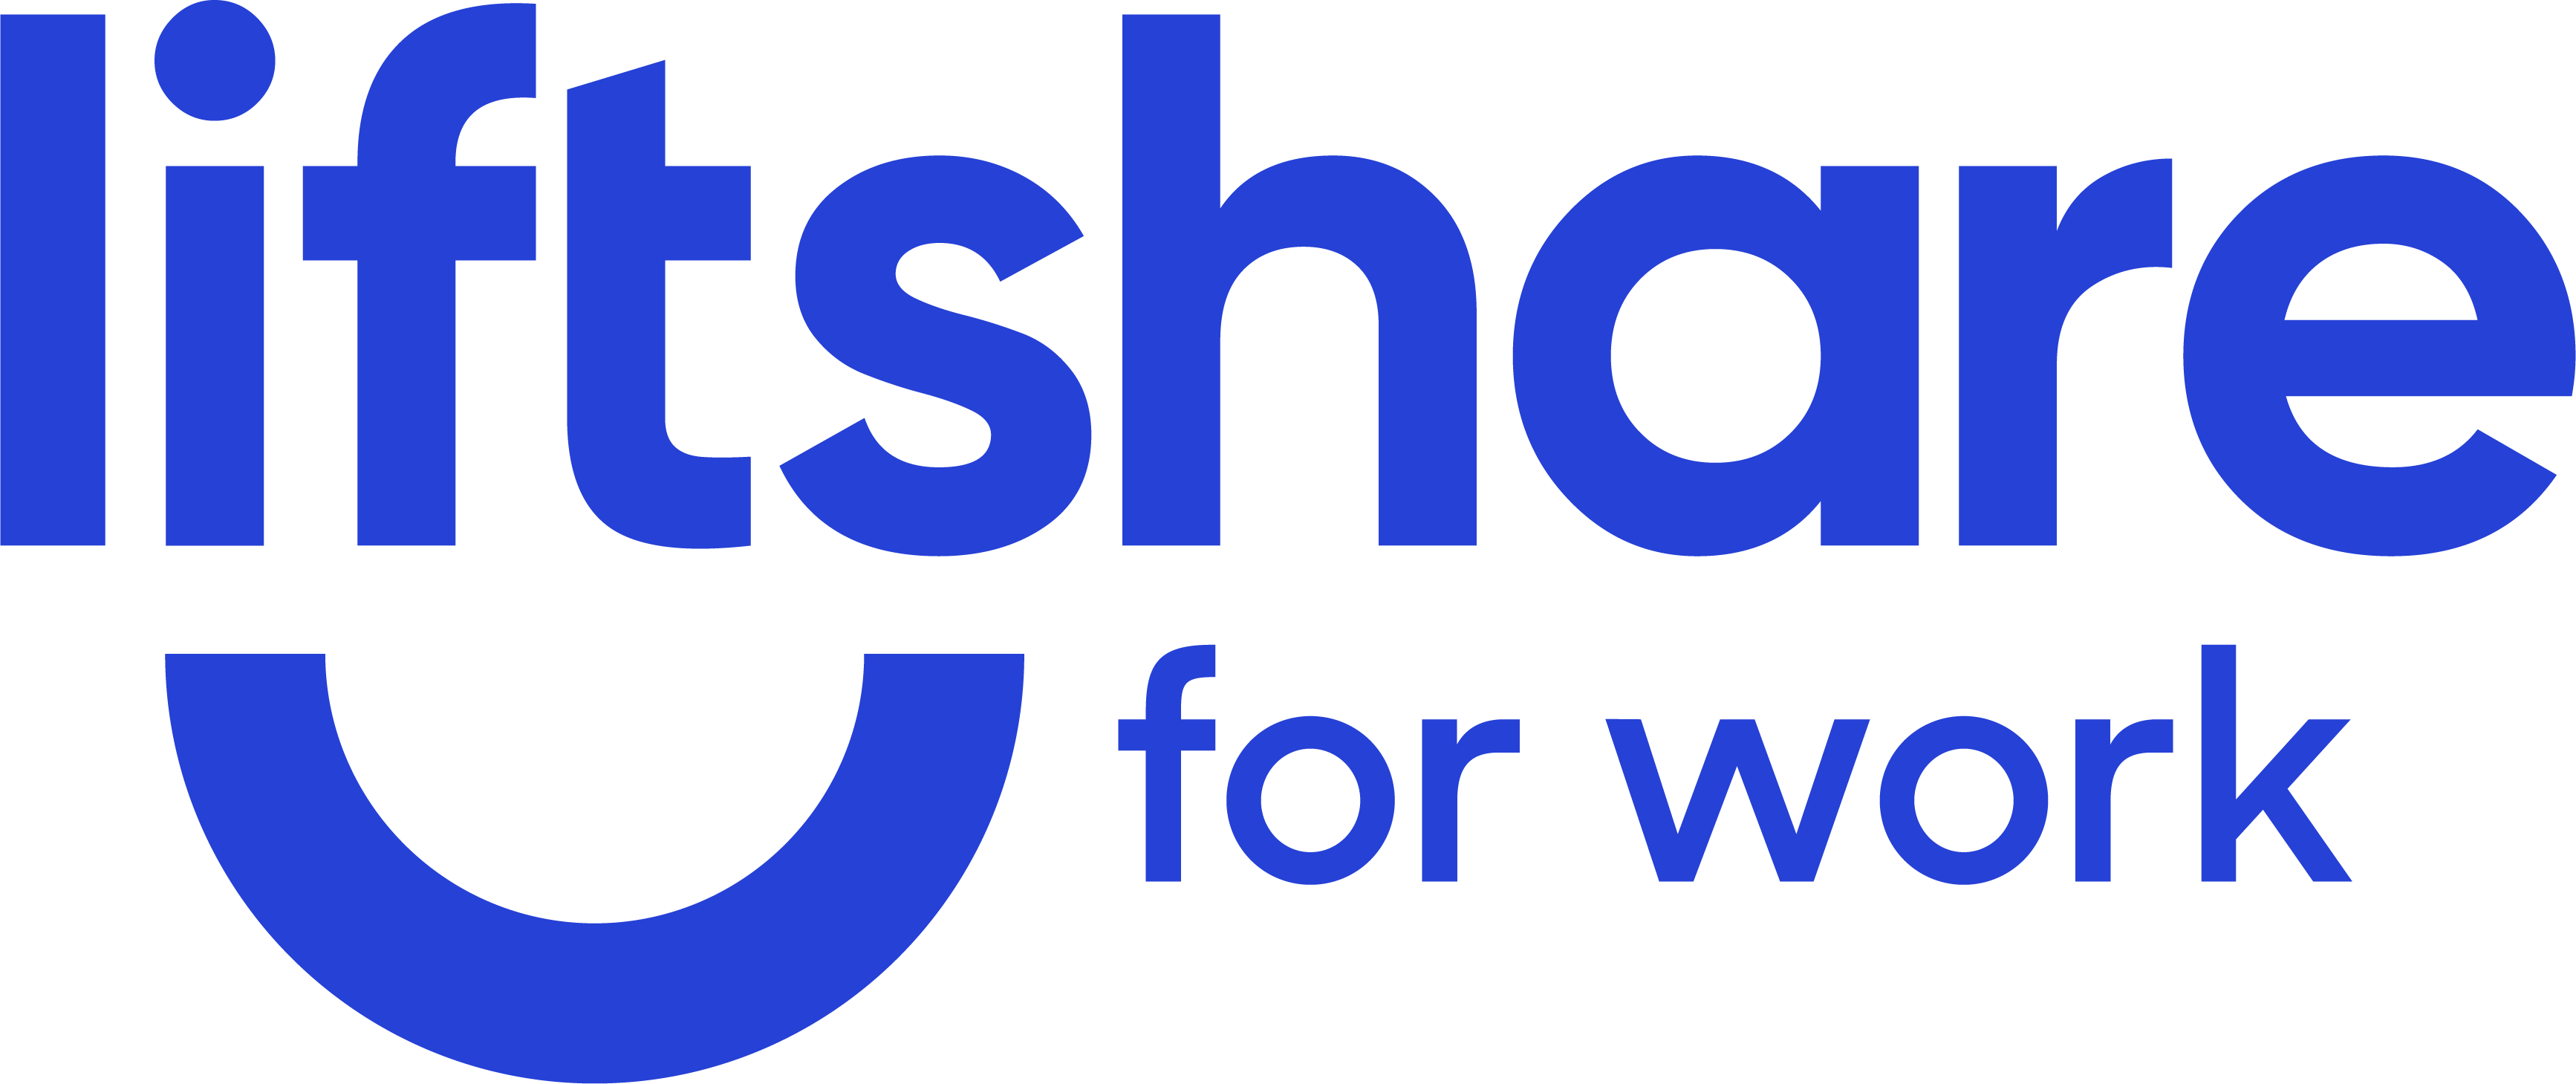 Liftshare_For_Work_Blue_RGB